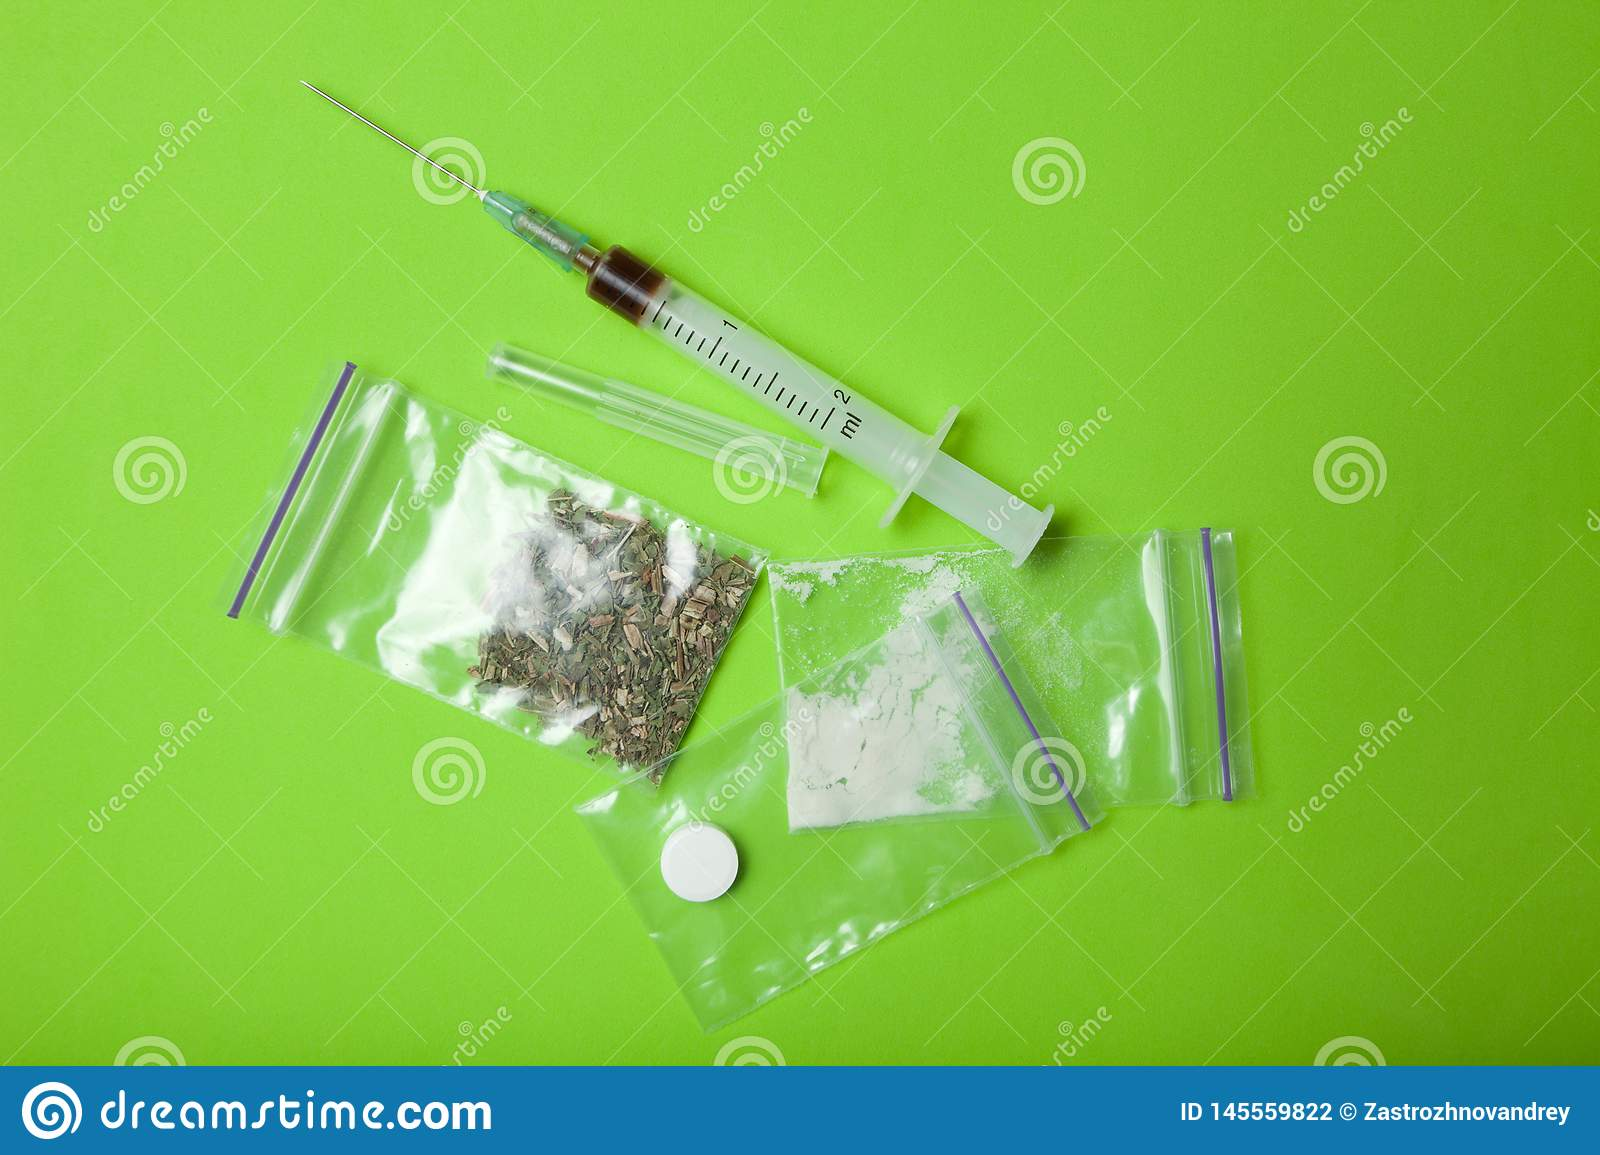 Heroin, cocaine, marijuana and ecstasy on a green background